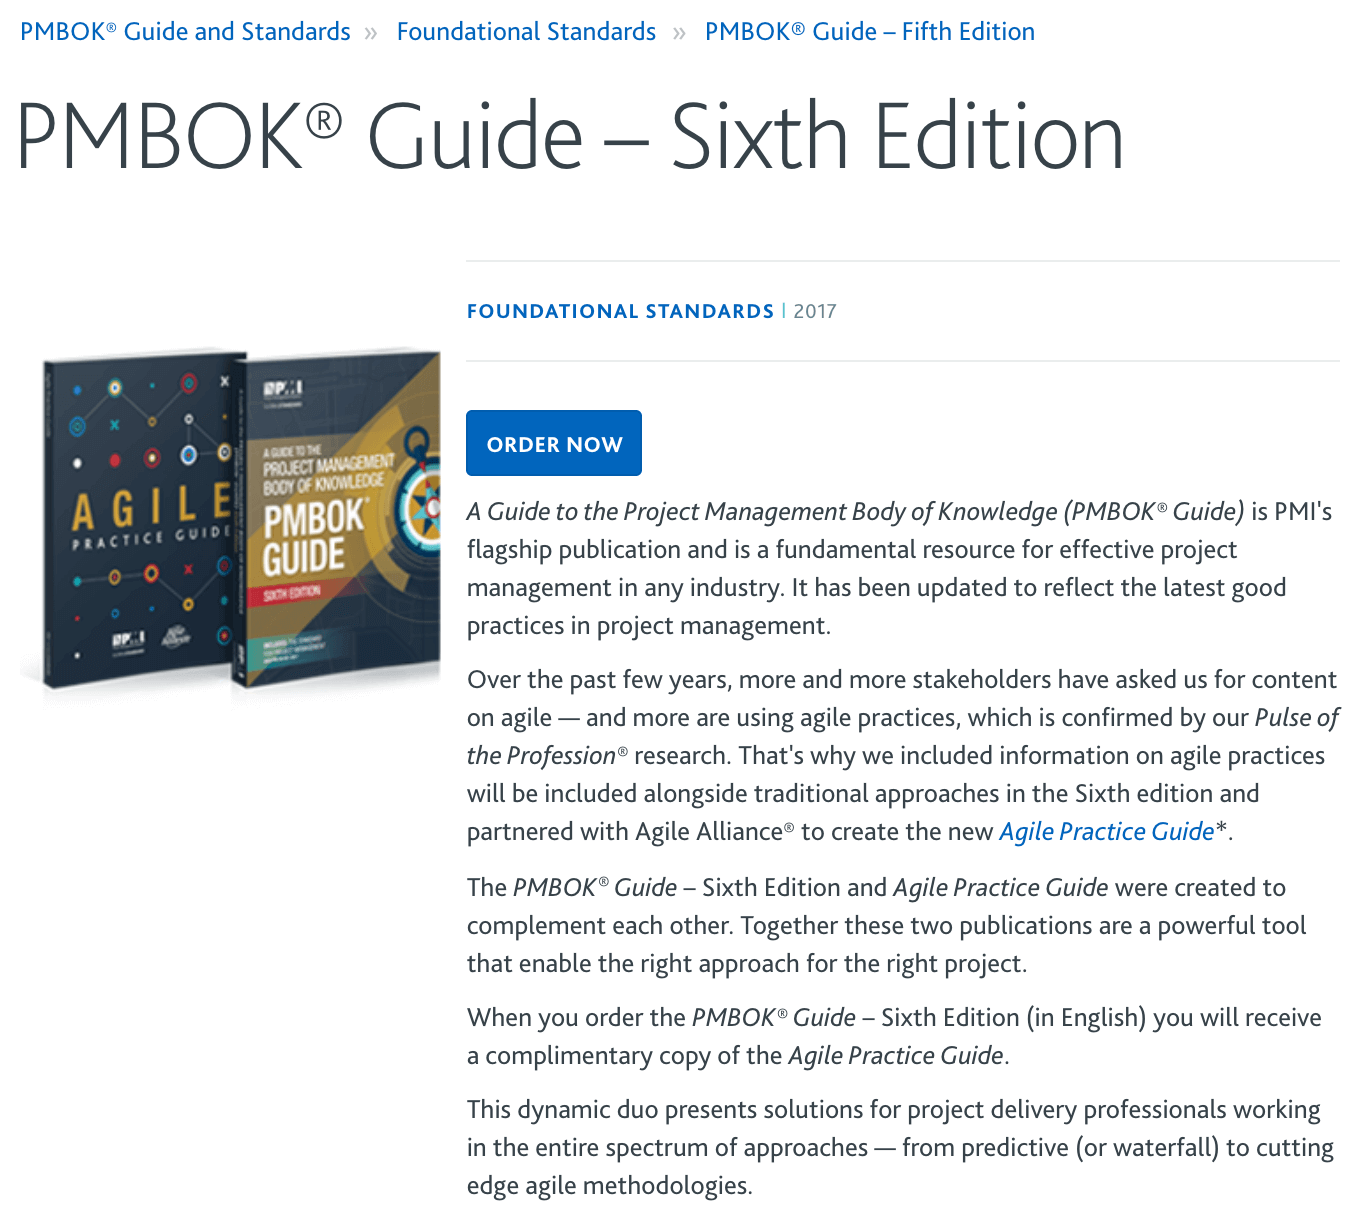 Download PMBOK Guide 6th Edition (PDF) - FREE for PMI